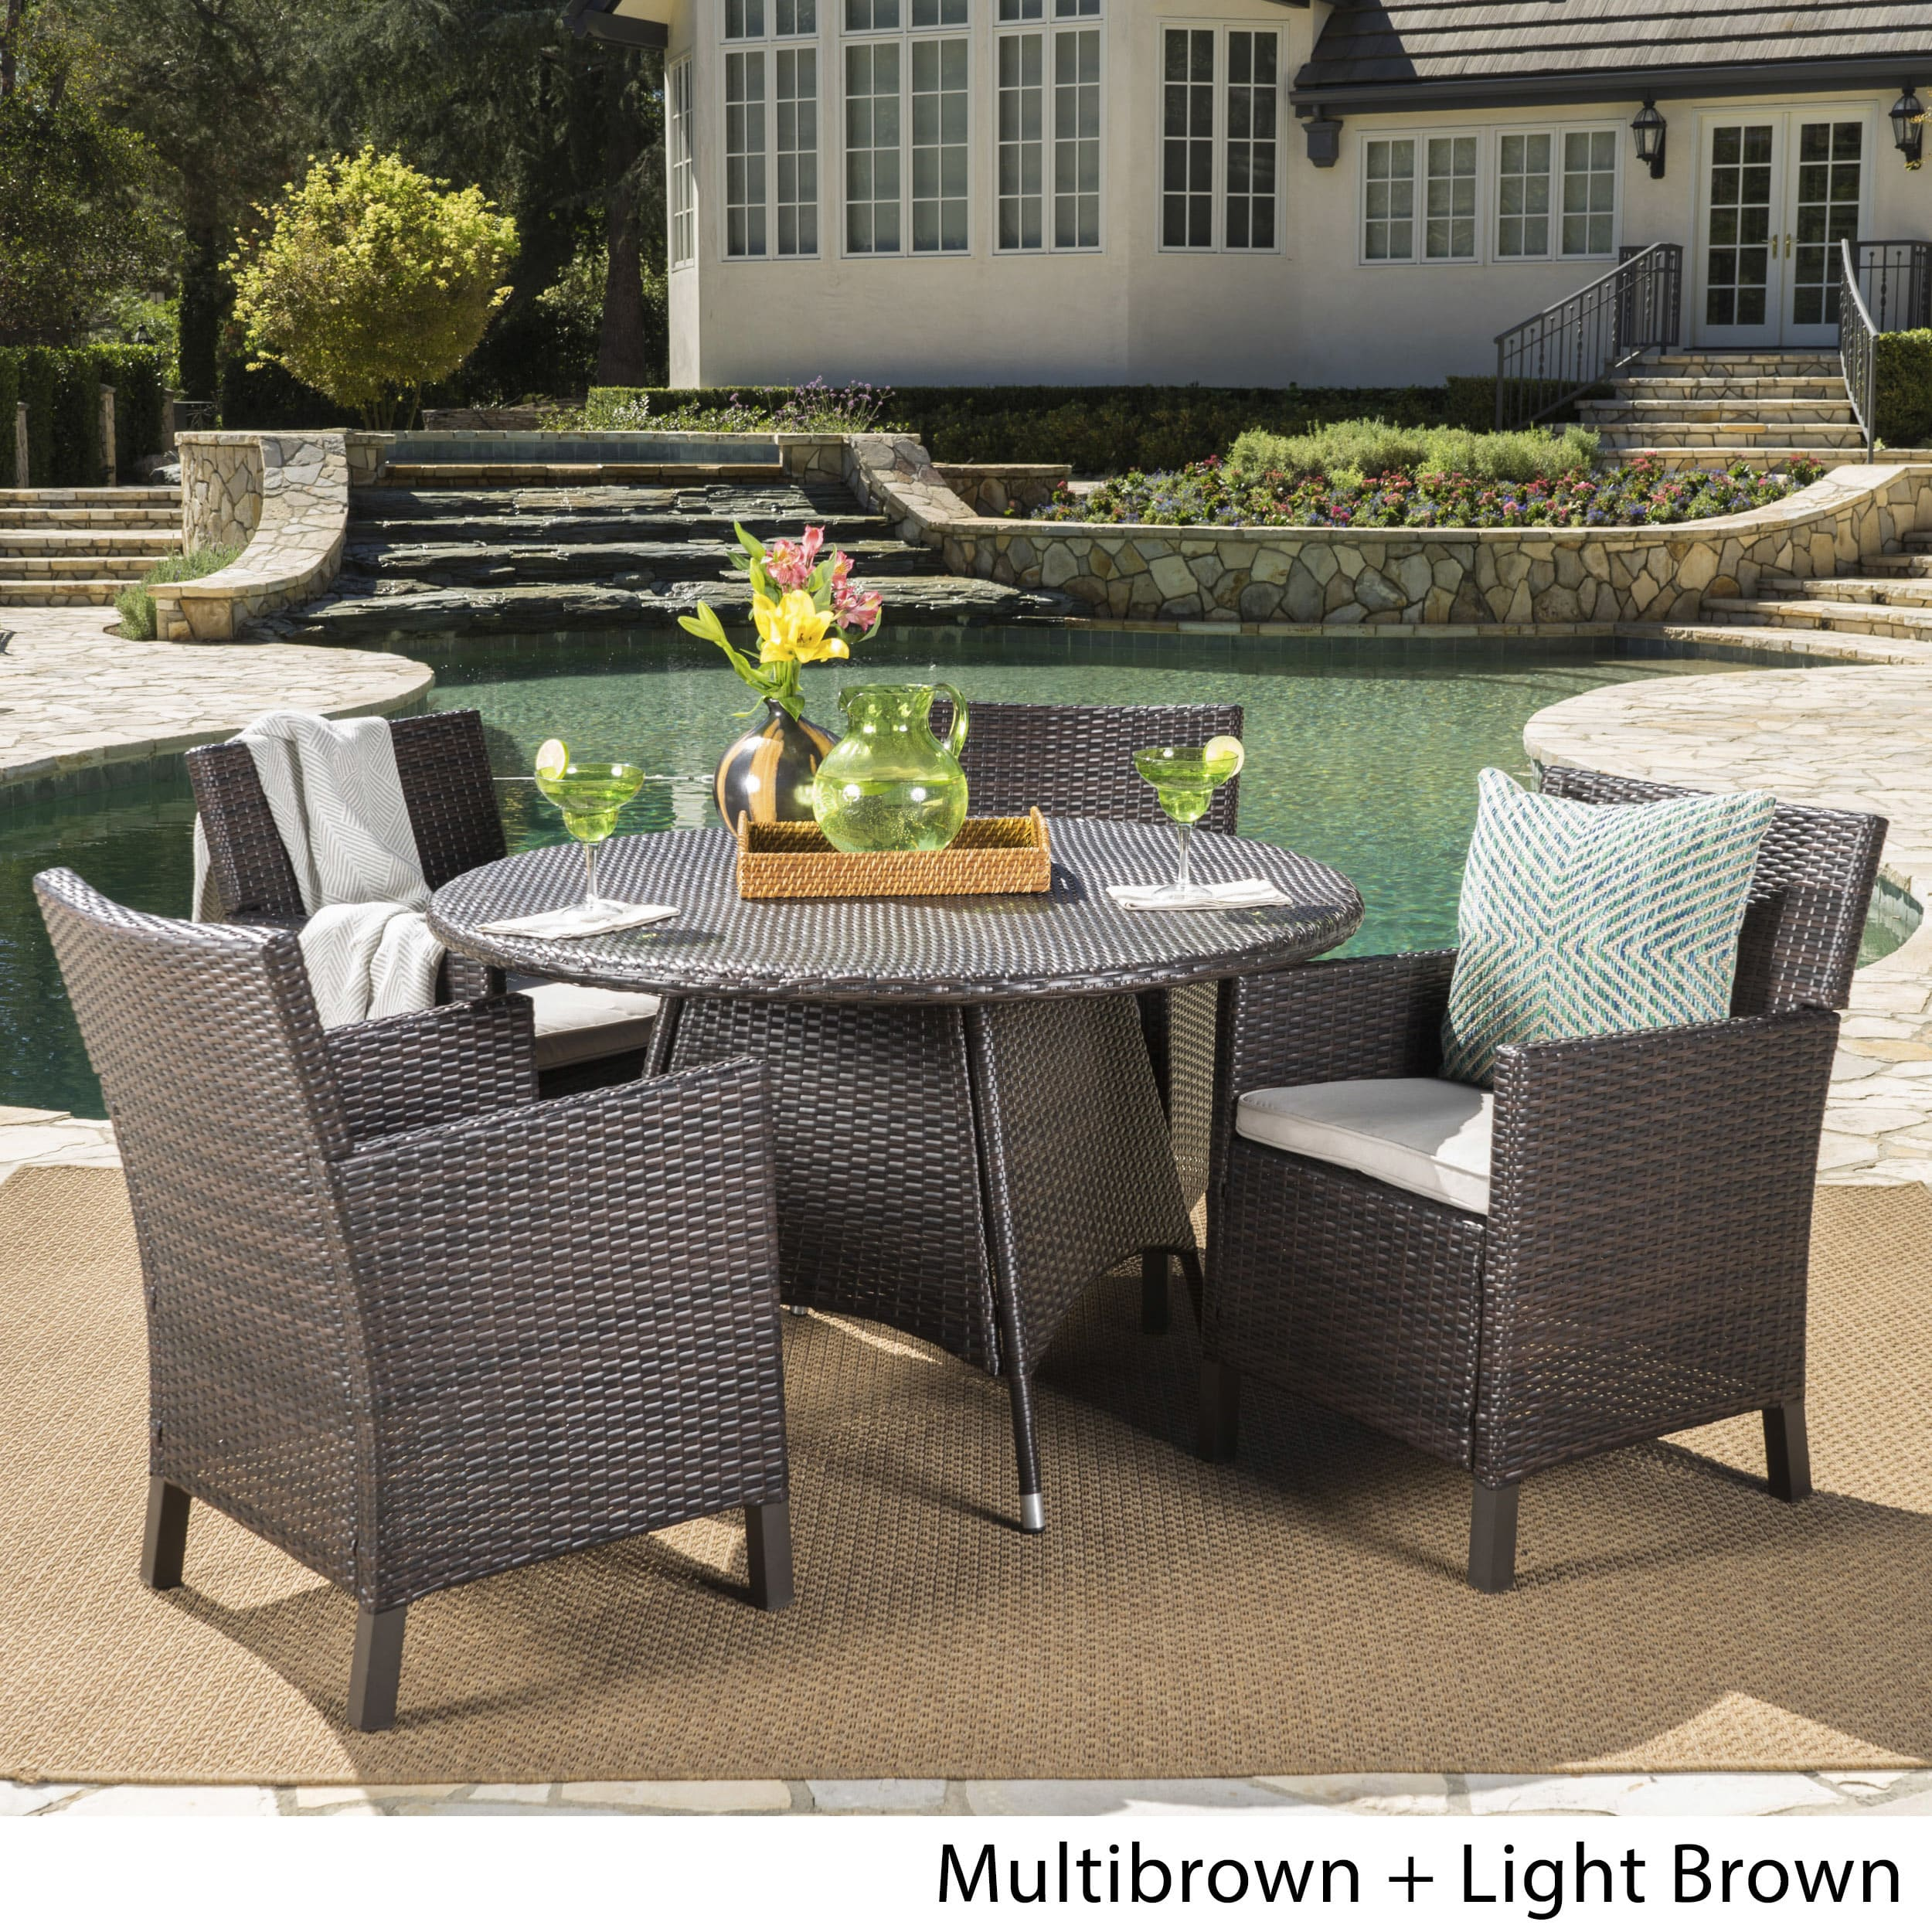 Christopher Knight Home Cypress Outdoor 5-piece Round Wicker Dining Set with Cushions & Umbrella Hole by